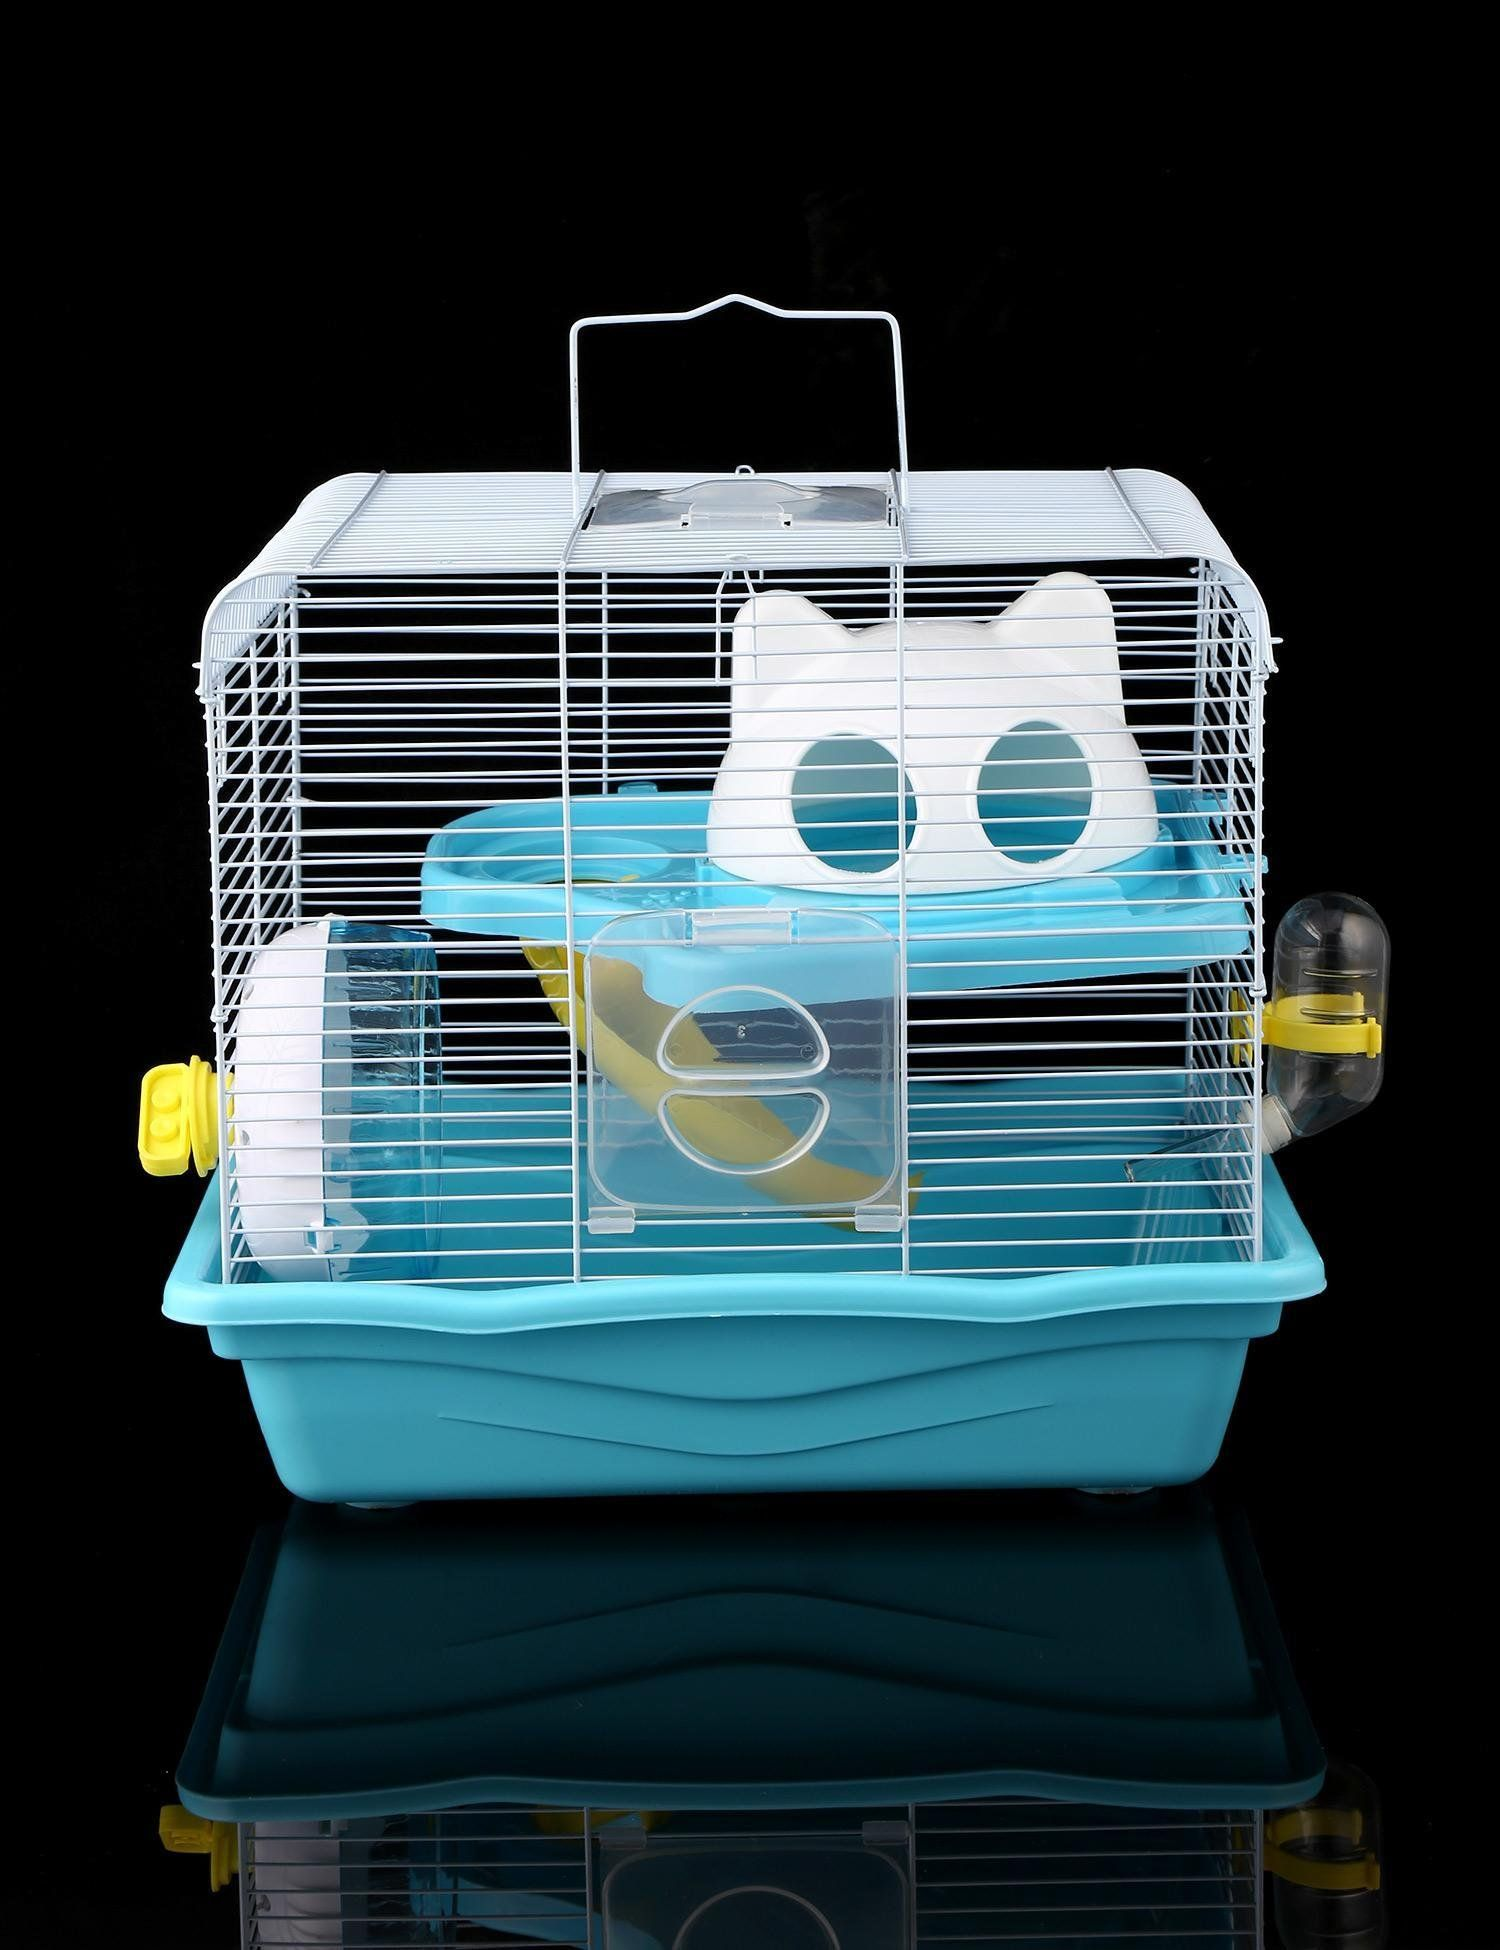 Dwarf Hamster Cage Haven Pet Products Double Layers Blue Check Out This Excellent Item This Is An Affil Dwarf Hamster Cages Hamster Cage Small Animal Cage